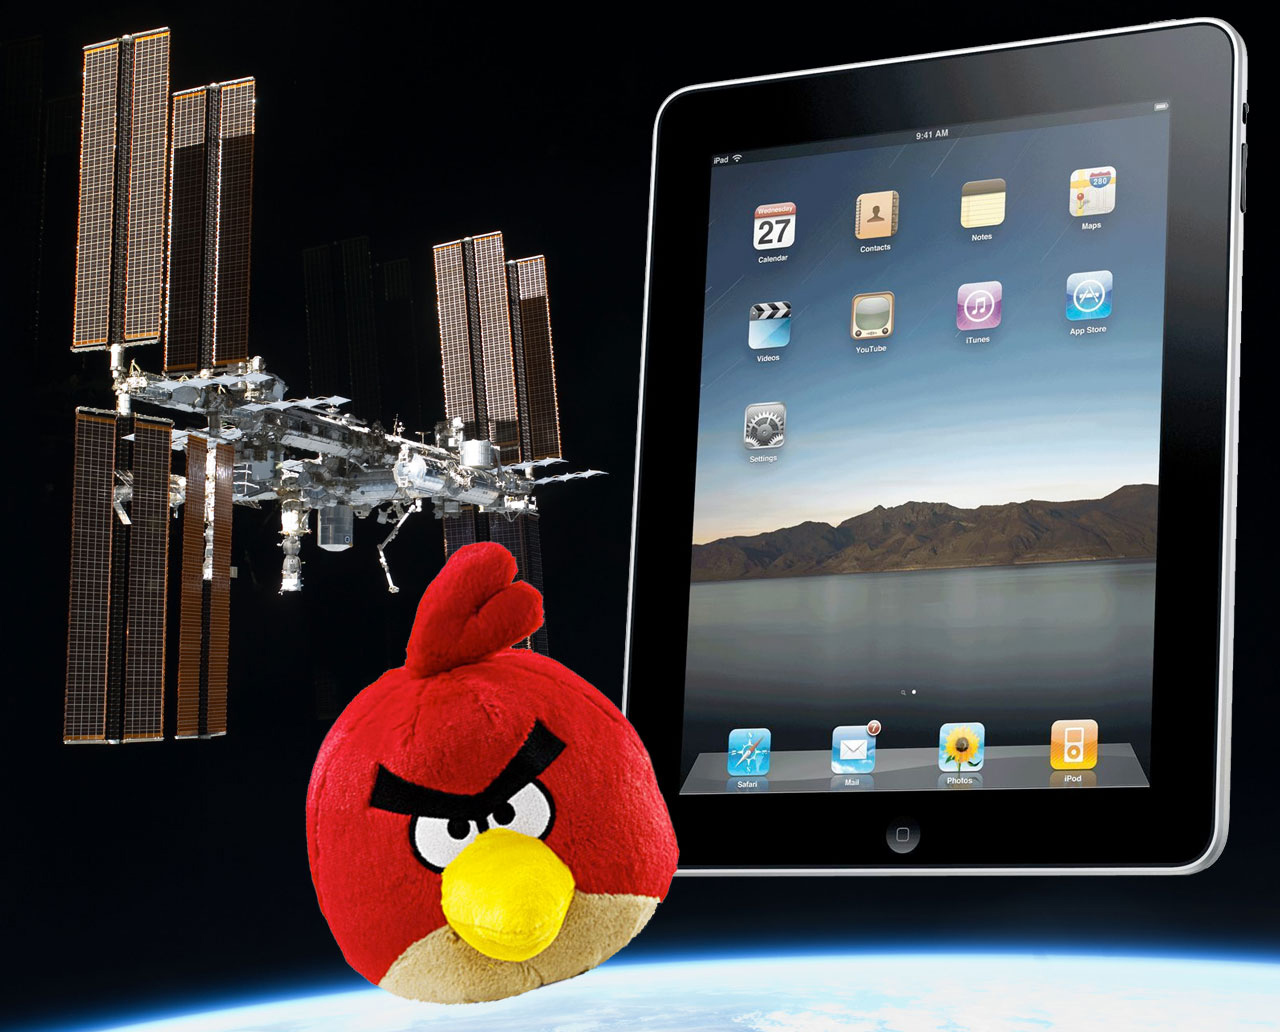 iPads and Angry Birds Launching to Space Station